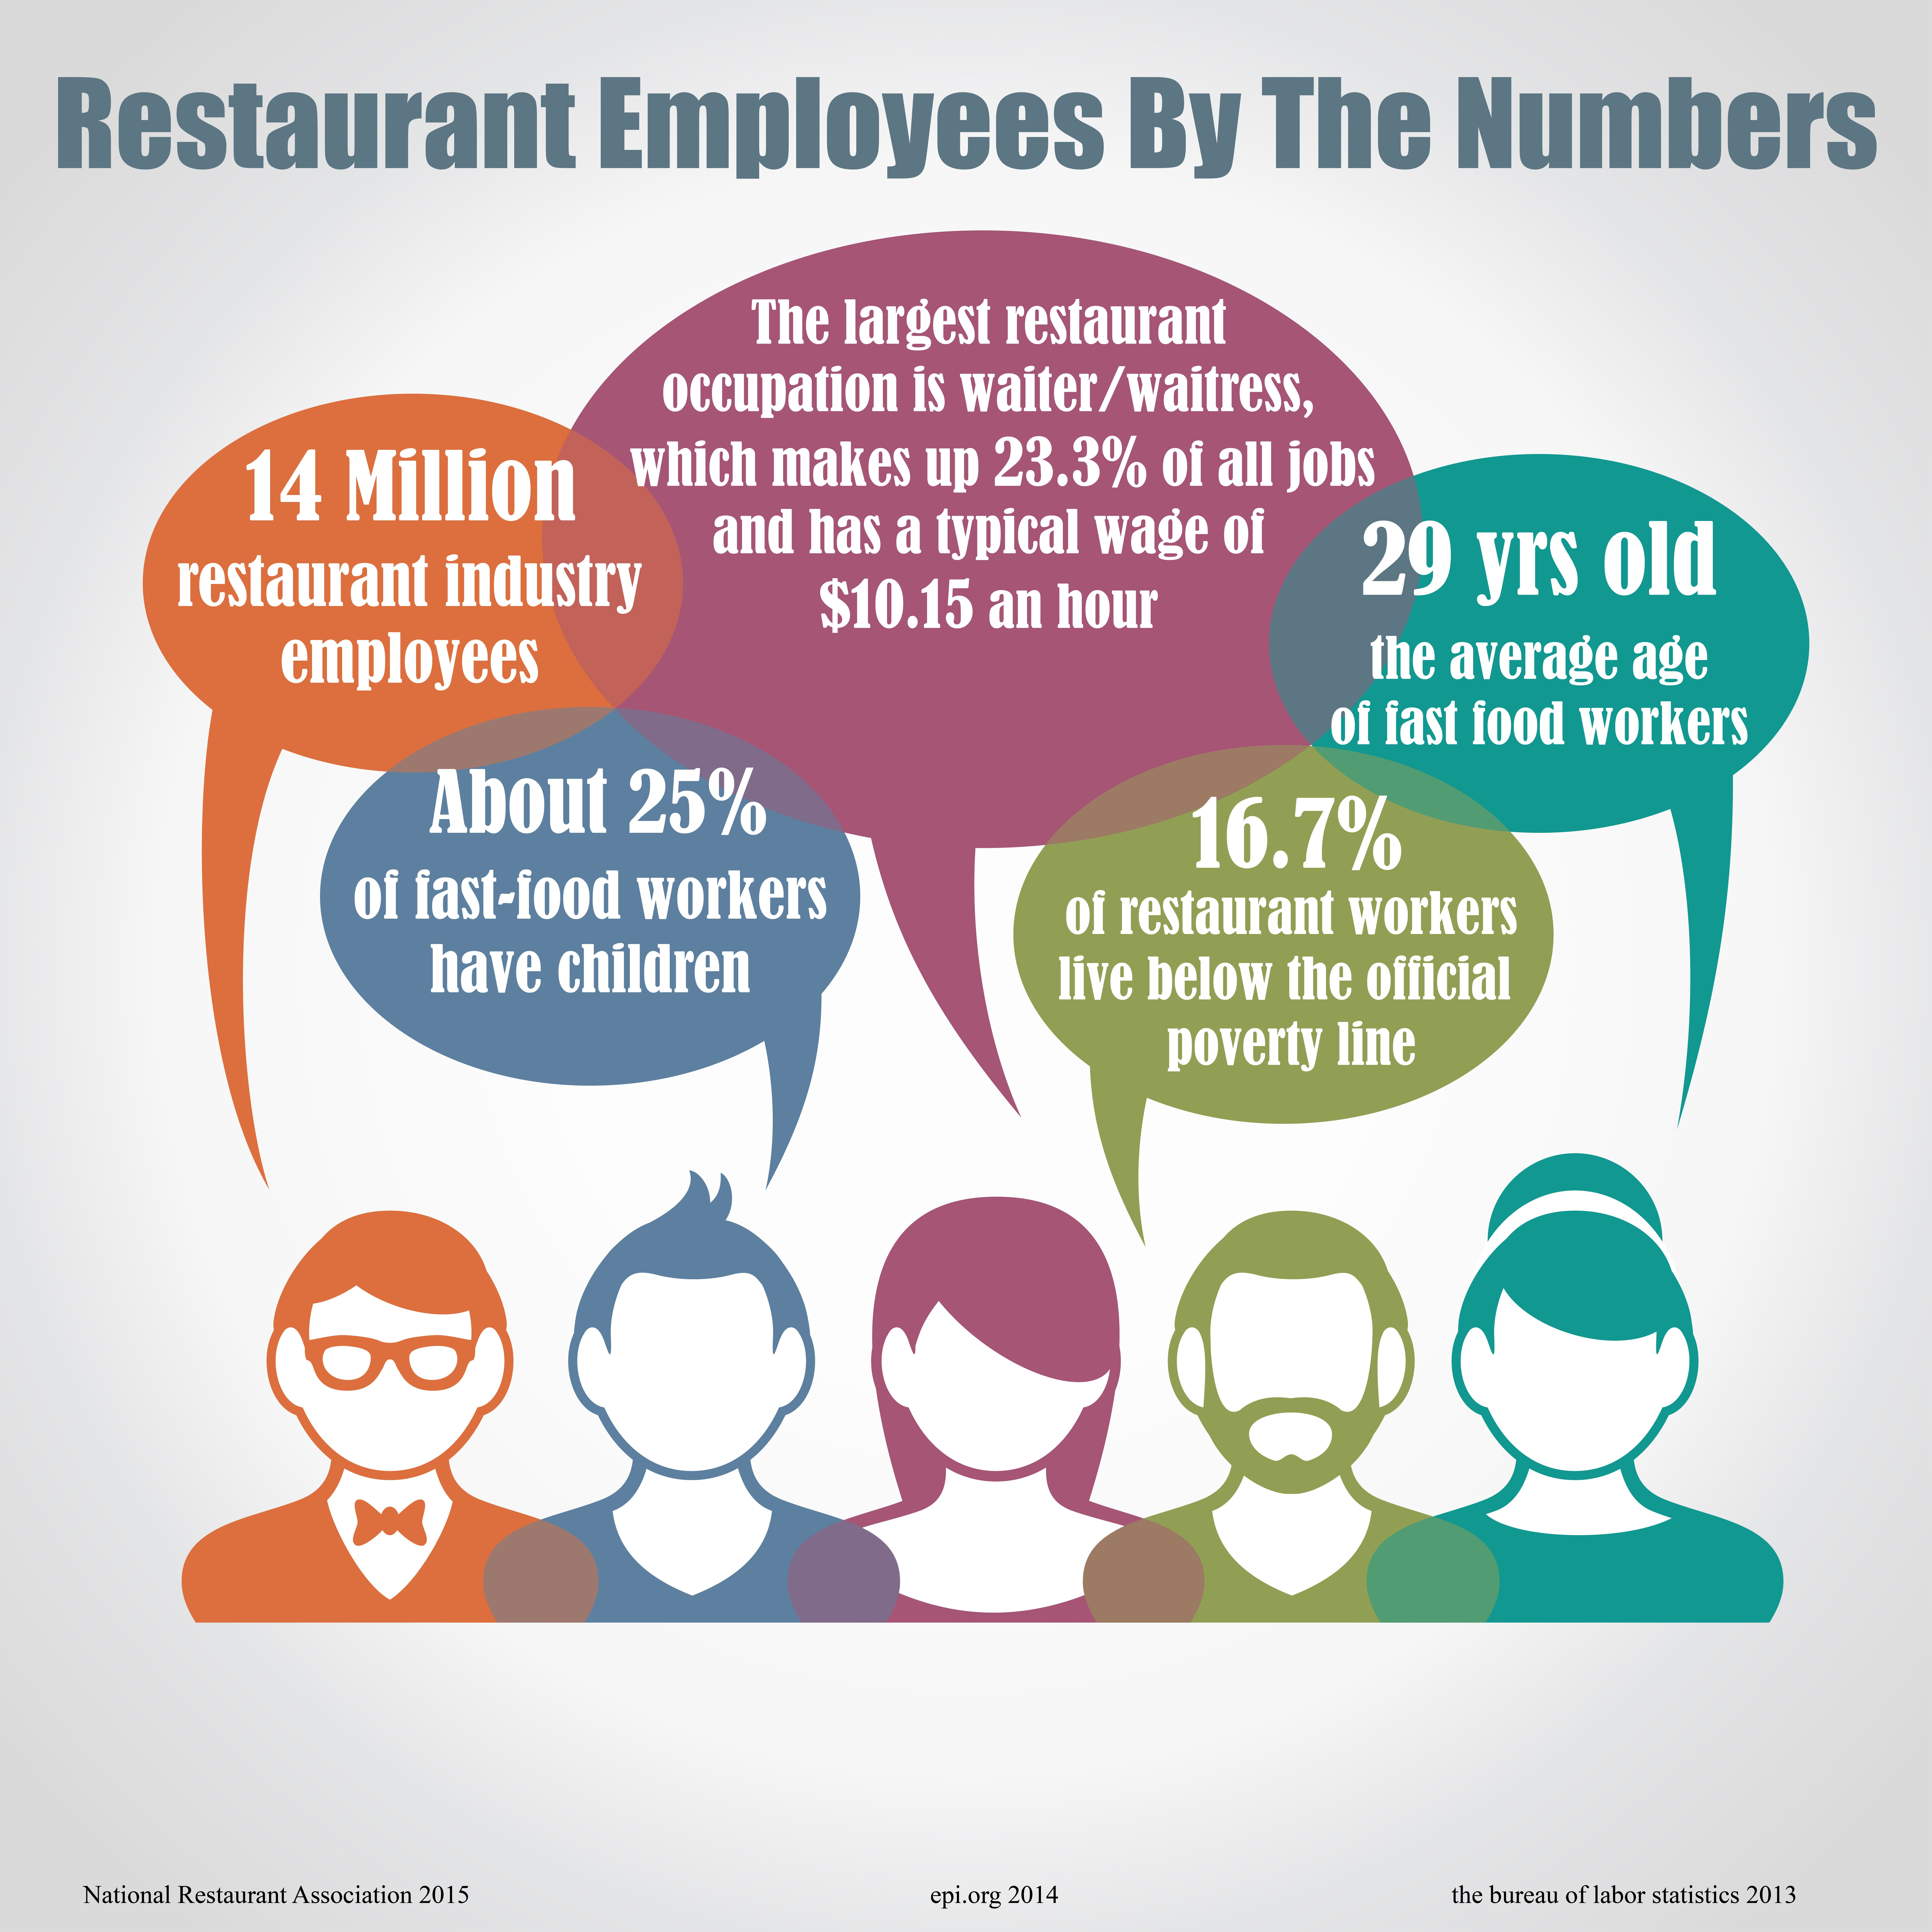 Restaurant Employees By The Numbers